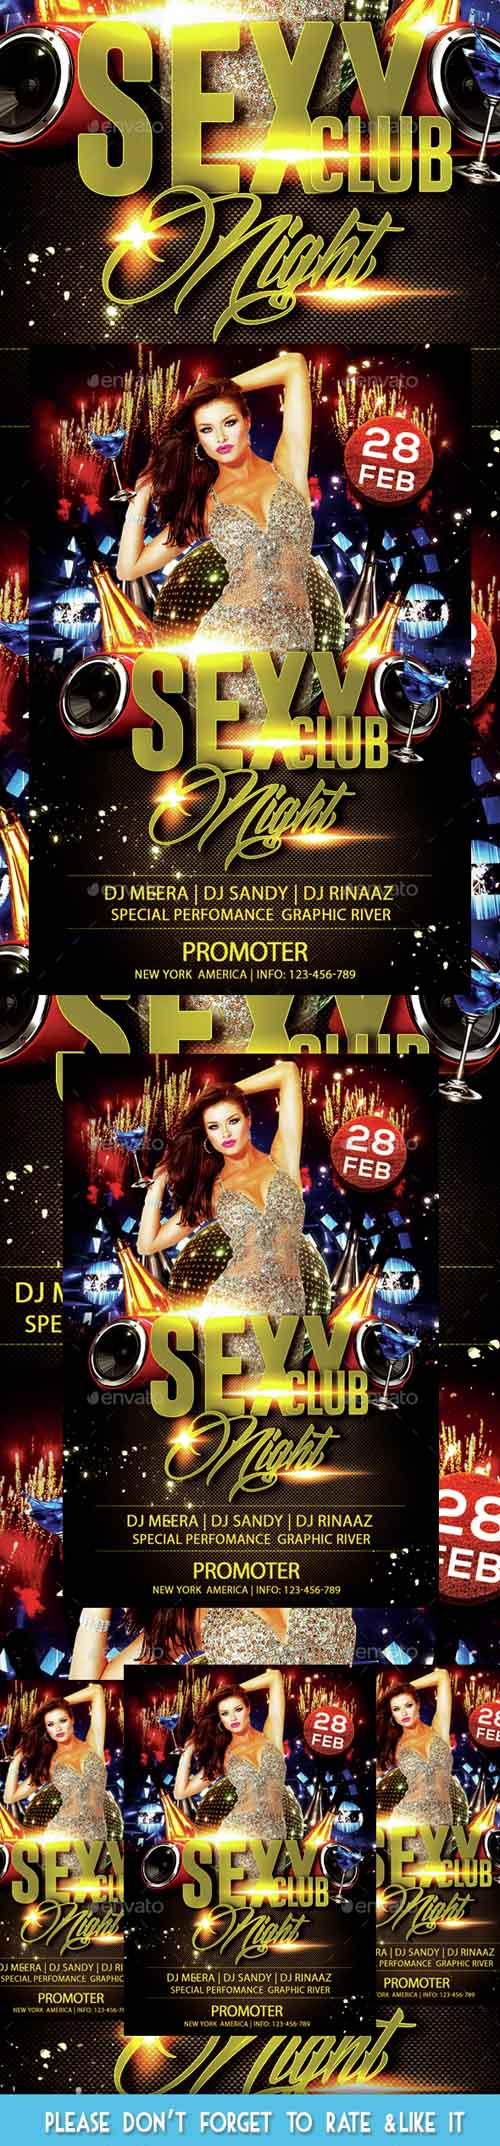 Sexy Club Night Party Flyer 14541207